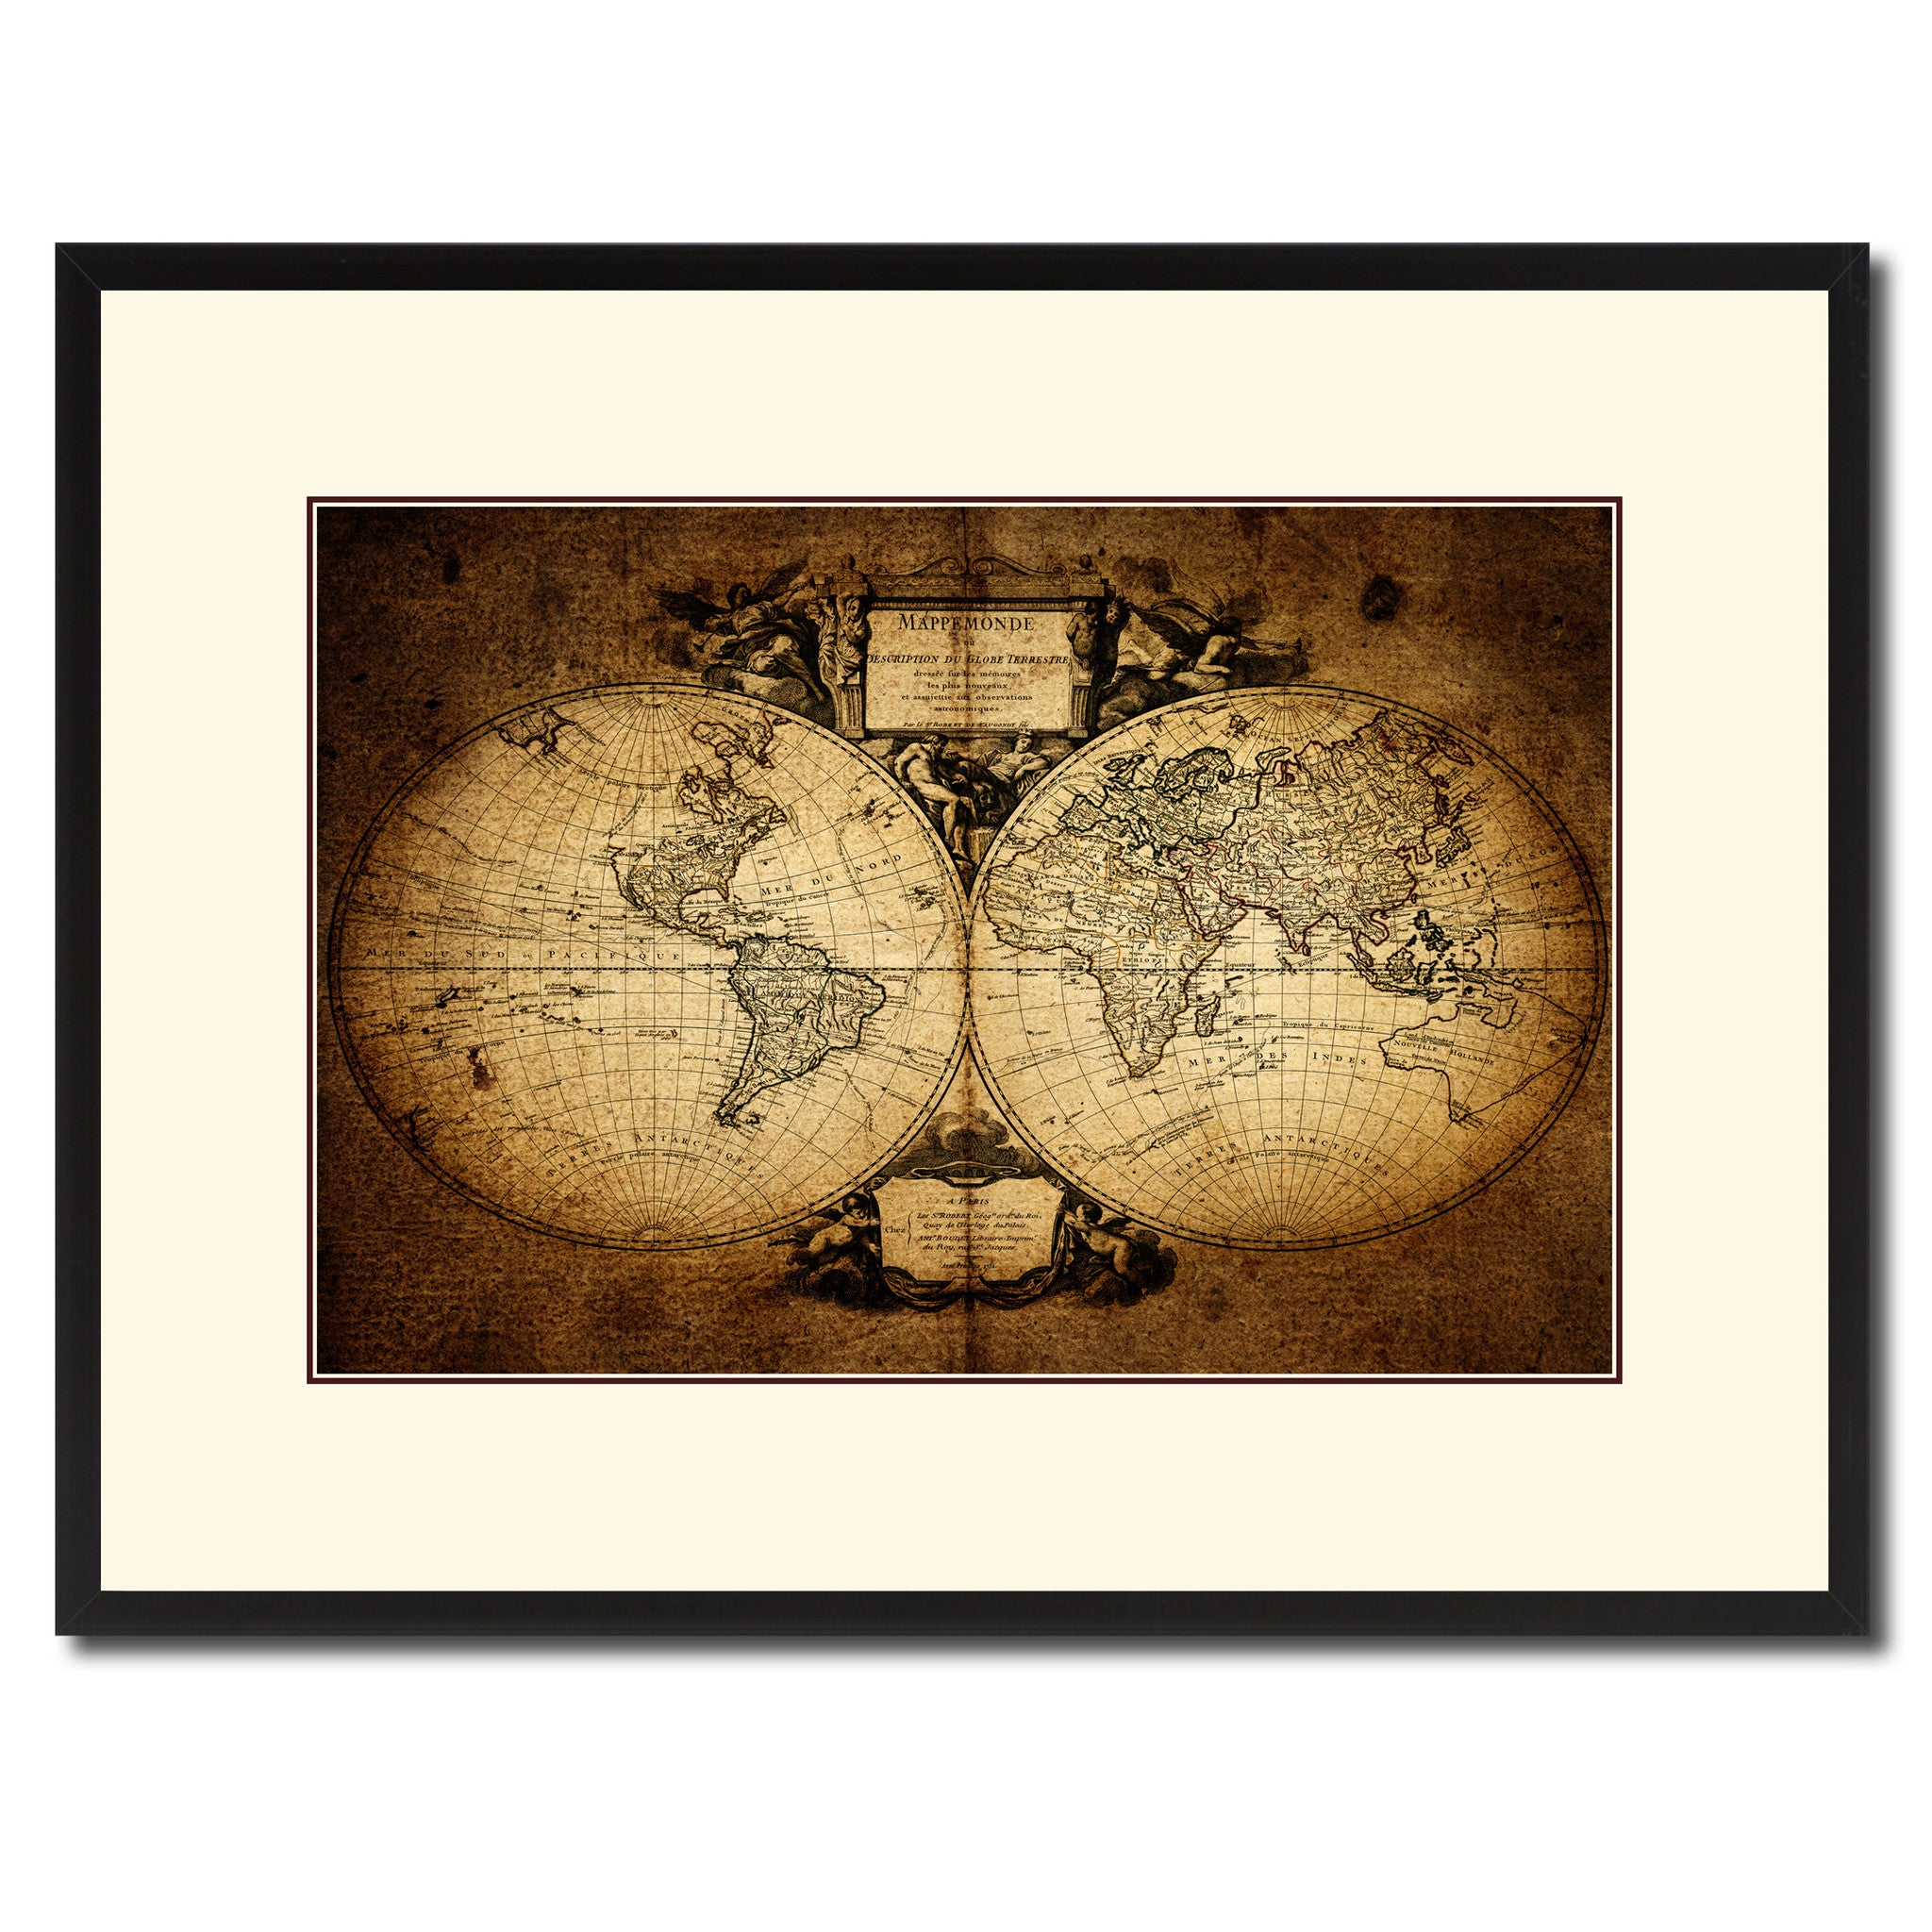 World vintage antique map wall art bedroom home decor gift ideas world vintage antique map wall art home decor gift ideas canvas print custom picture frame gumiabroncs Gallery